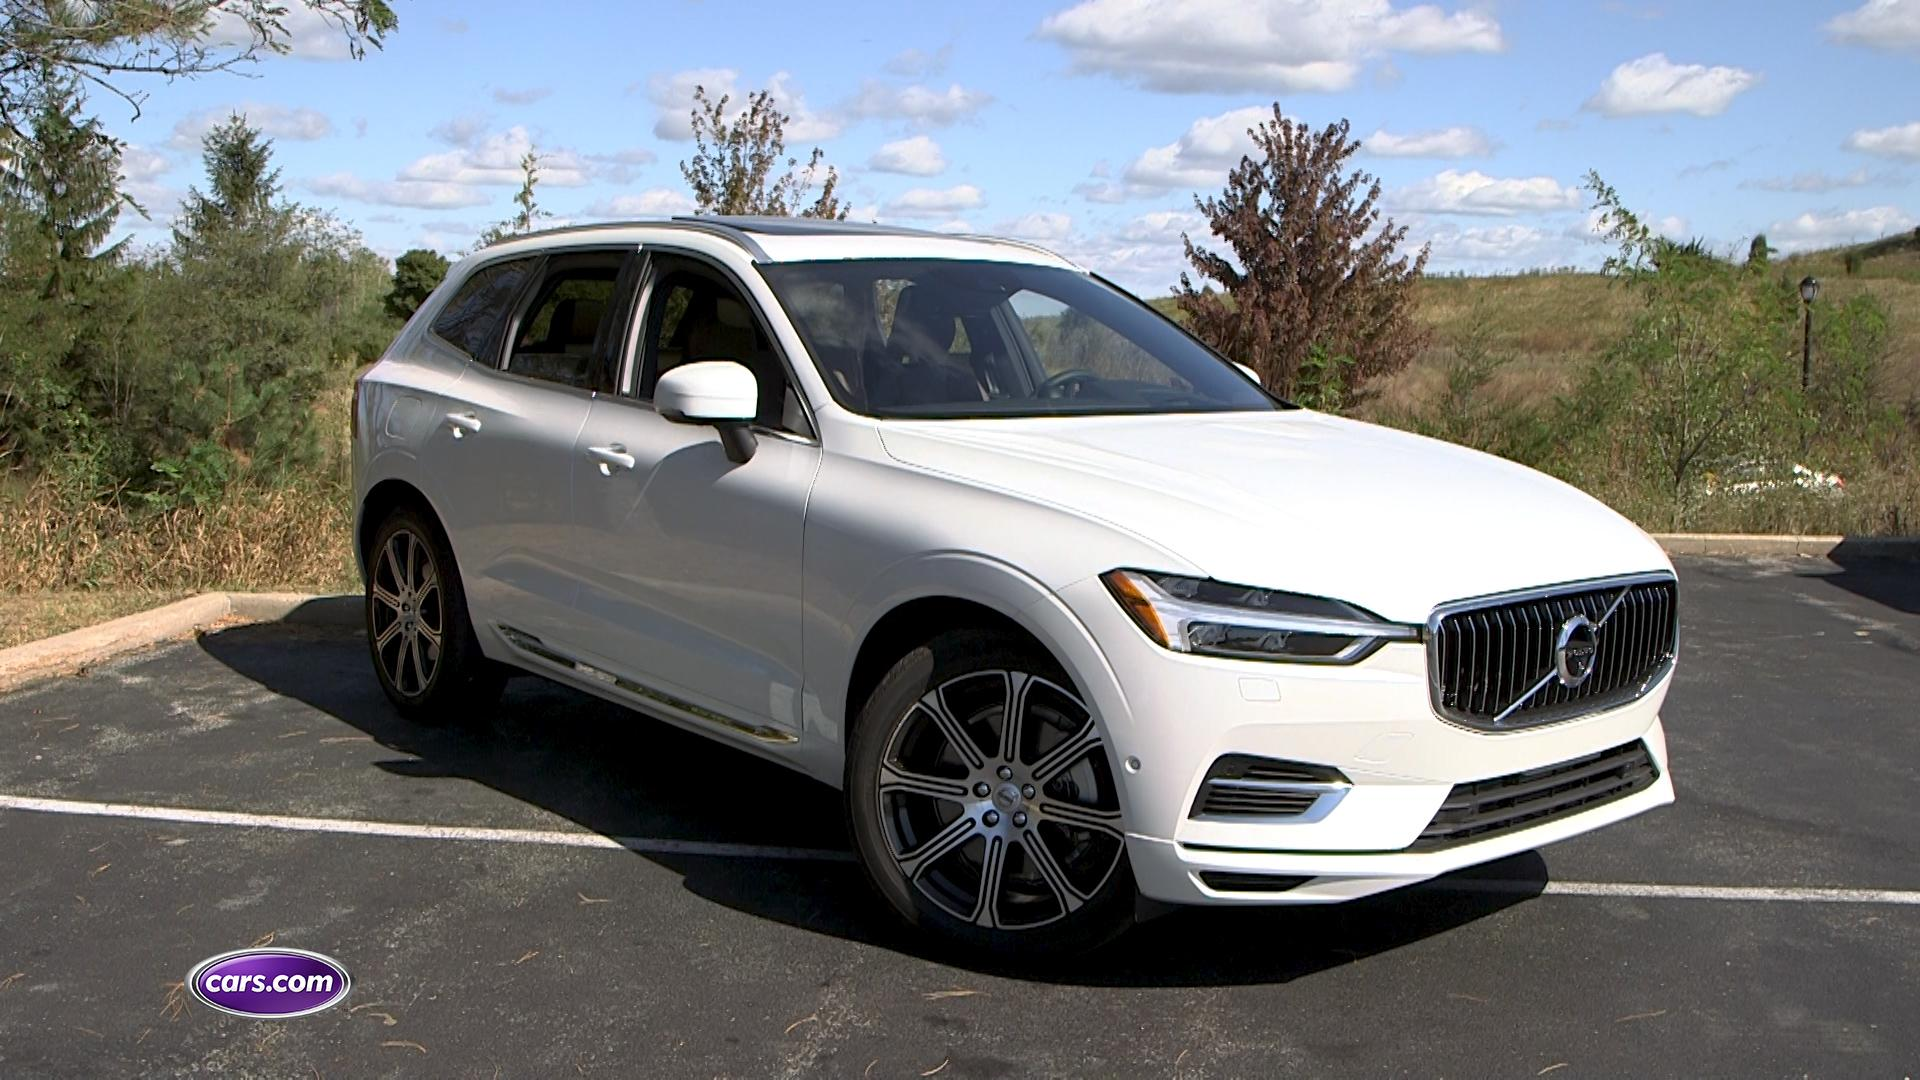 2018 Volvo XC60 Overview | Cars.com